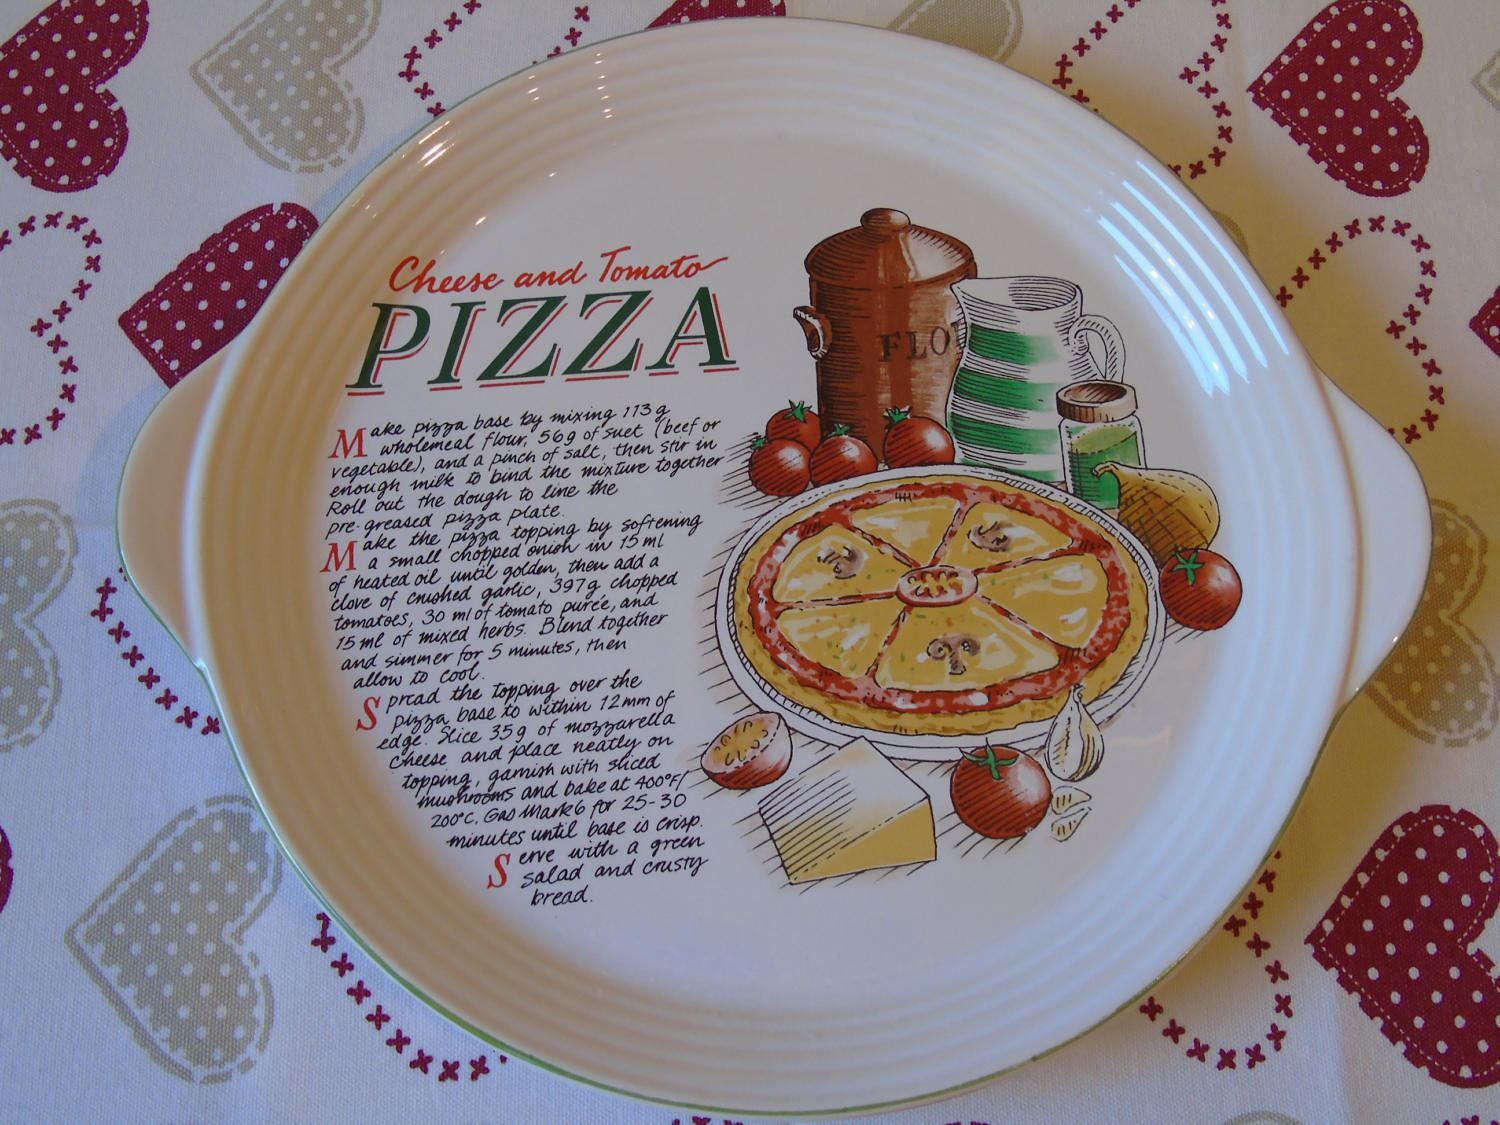 Cheese and Tomato Pizza Dish - Large Pizza Pie Plate - Unused Pizza Plate - Ceramic & Cheese and Tomato Pizza Dish - Large Pizza Pie Plate - Unused Pizza ...